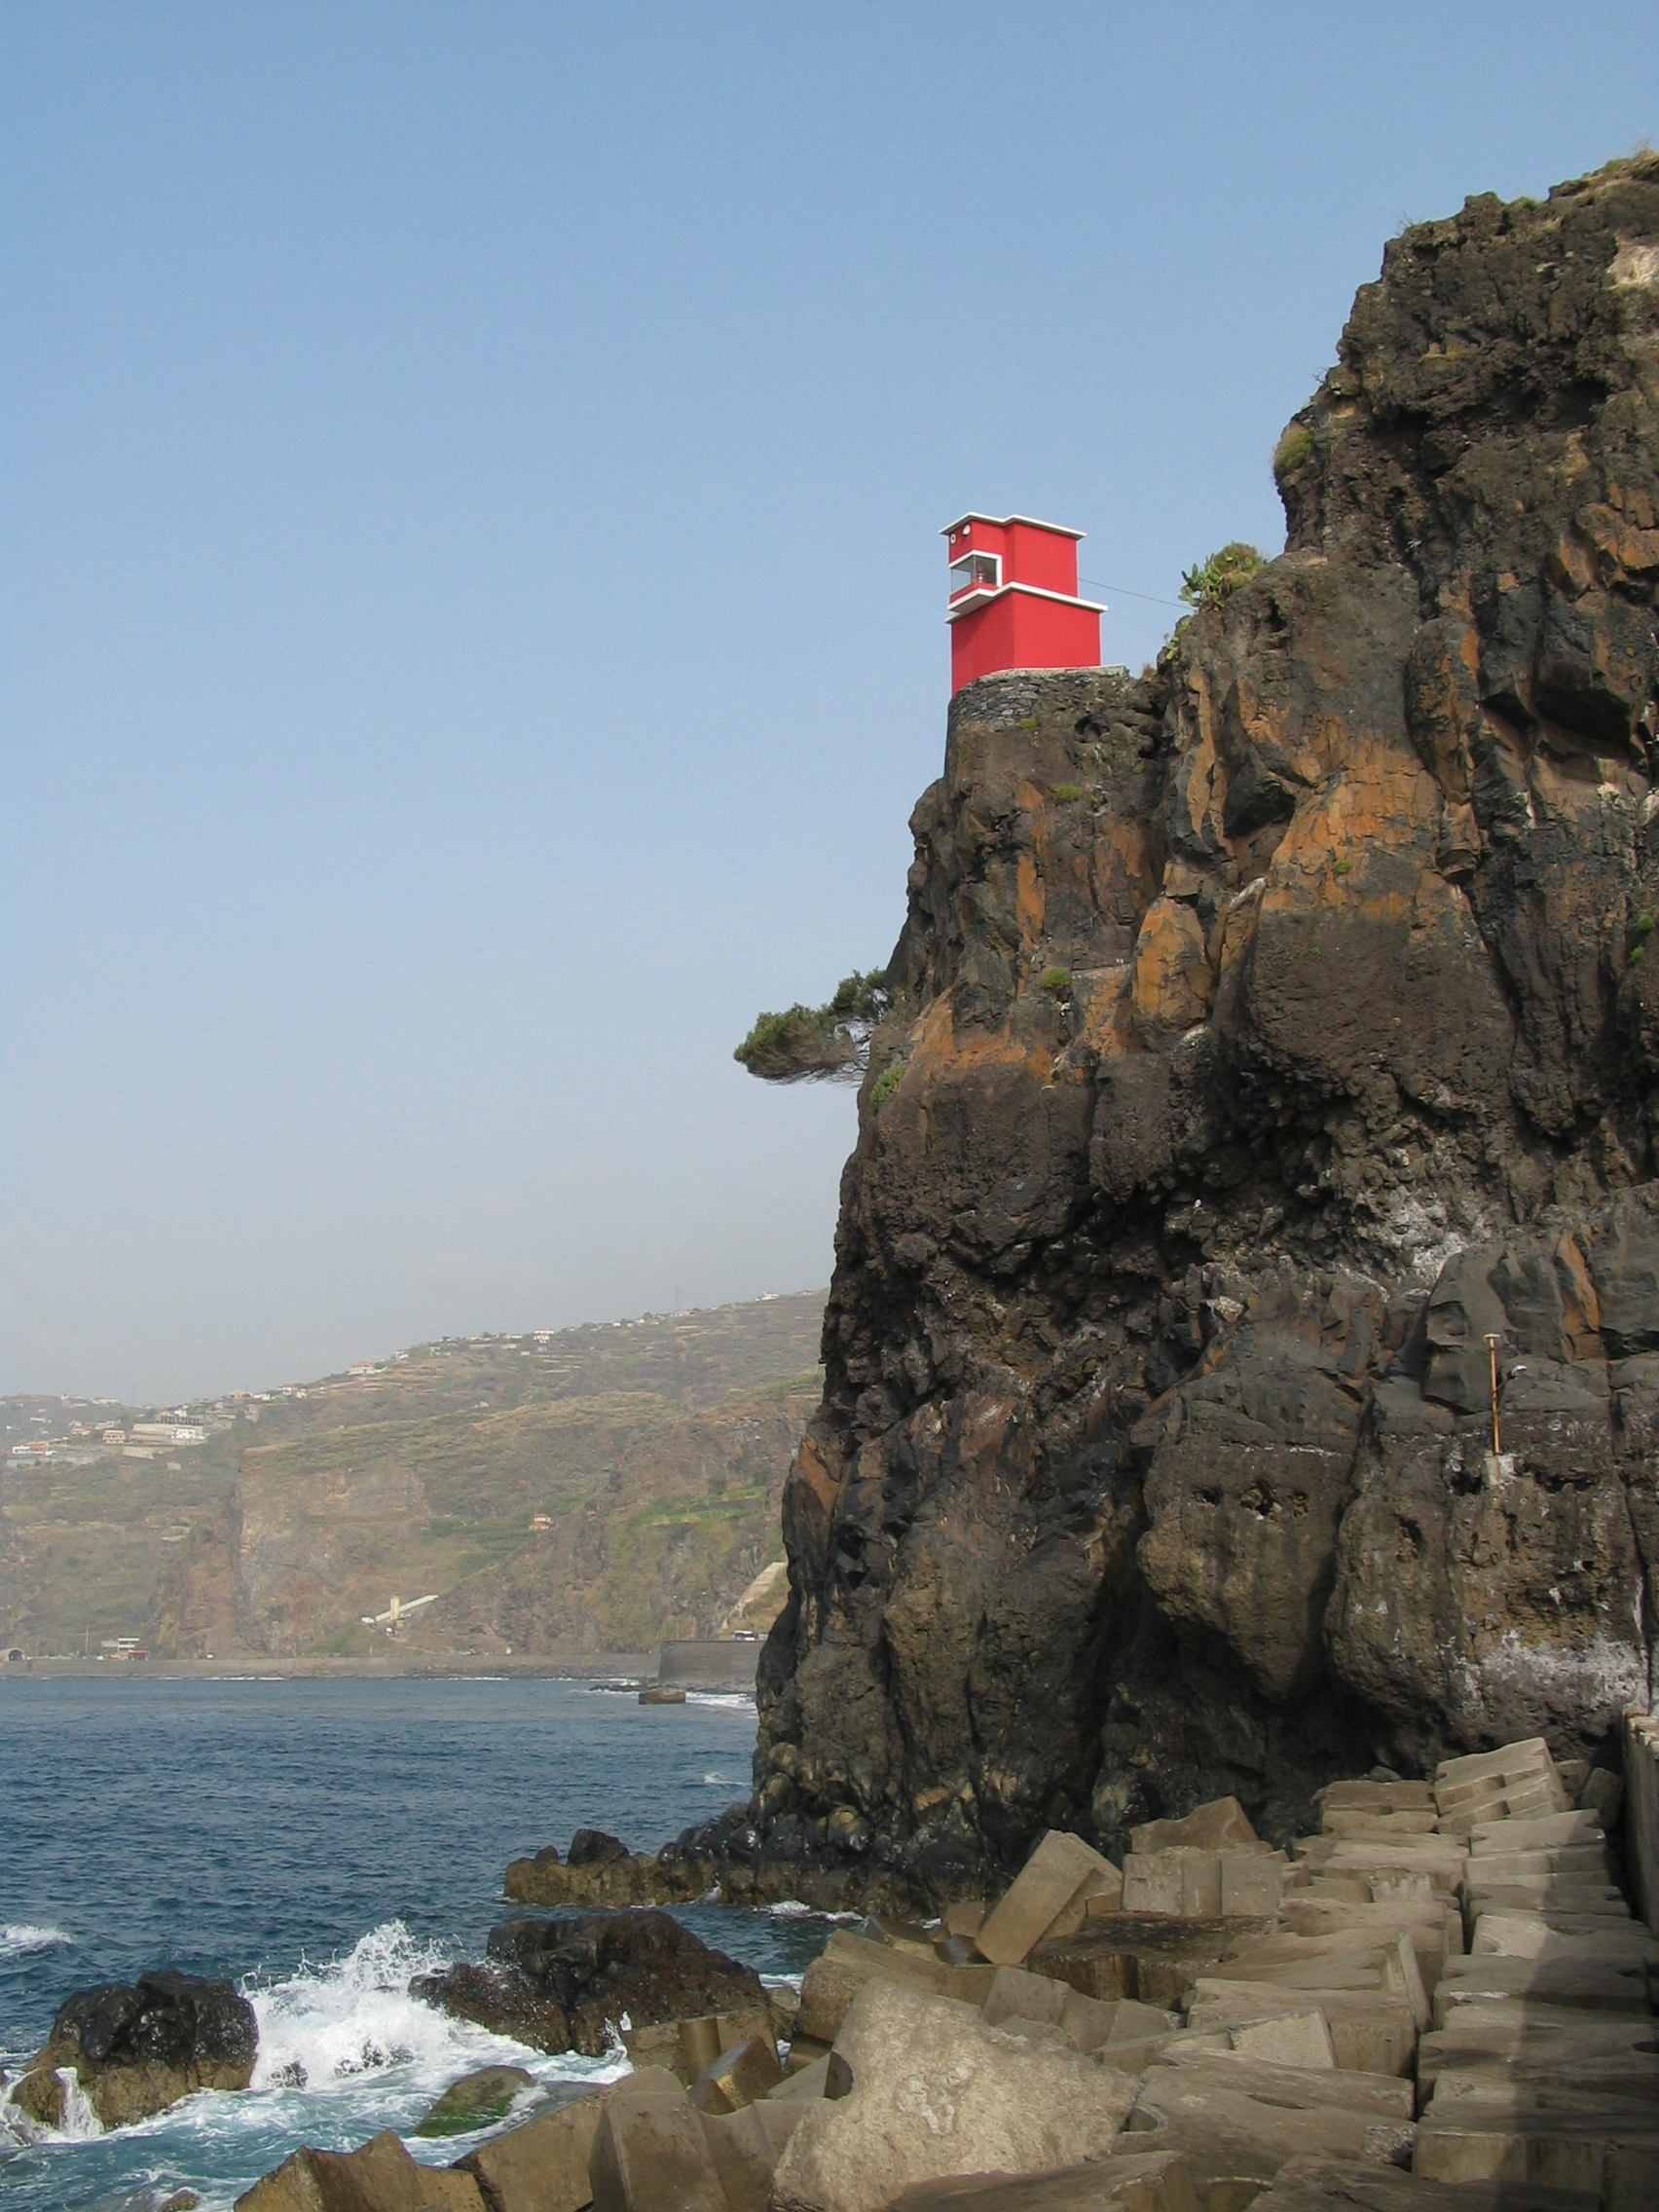 geoff_vane geoff vane cliff face clifface house red sheer